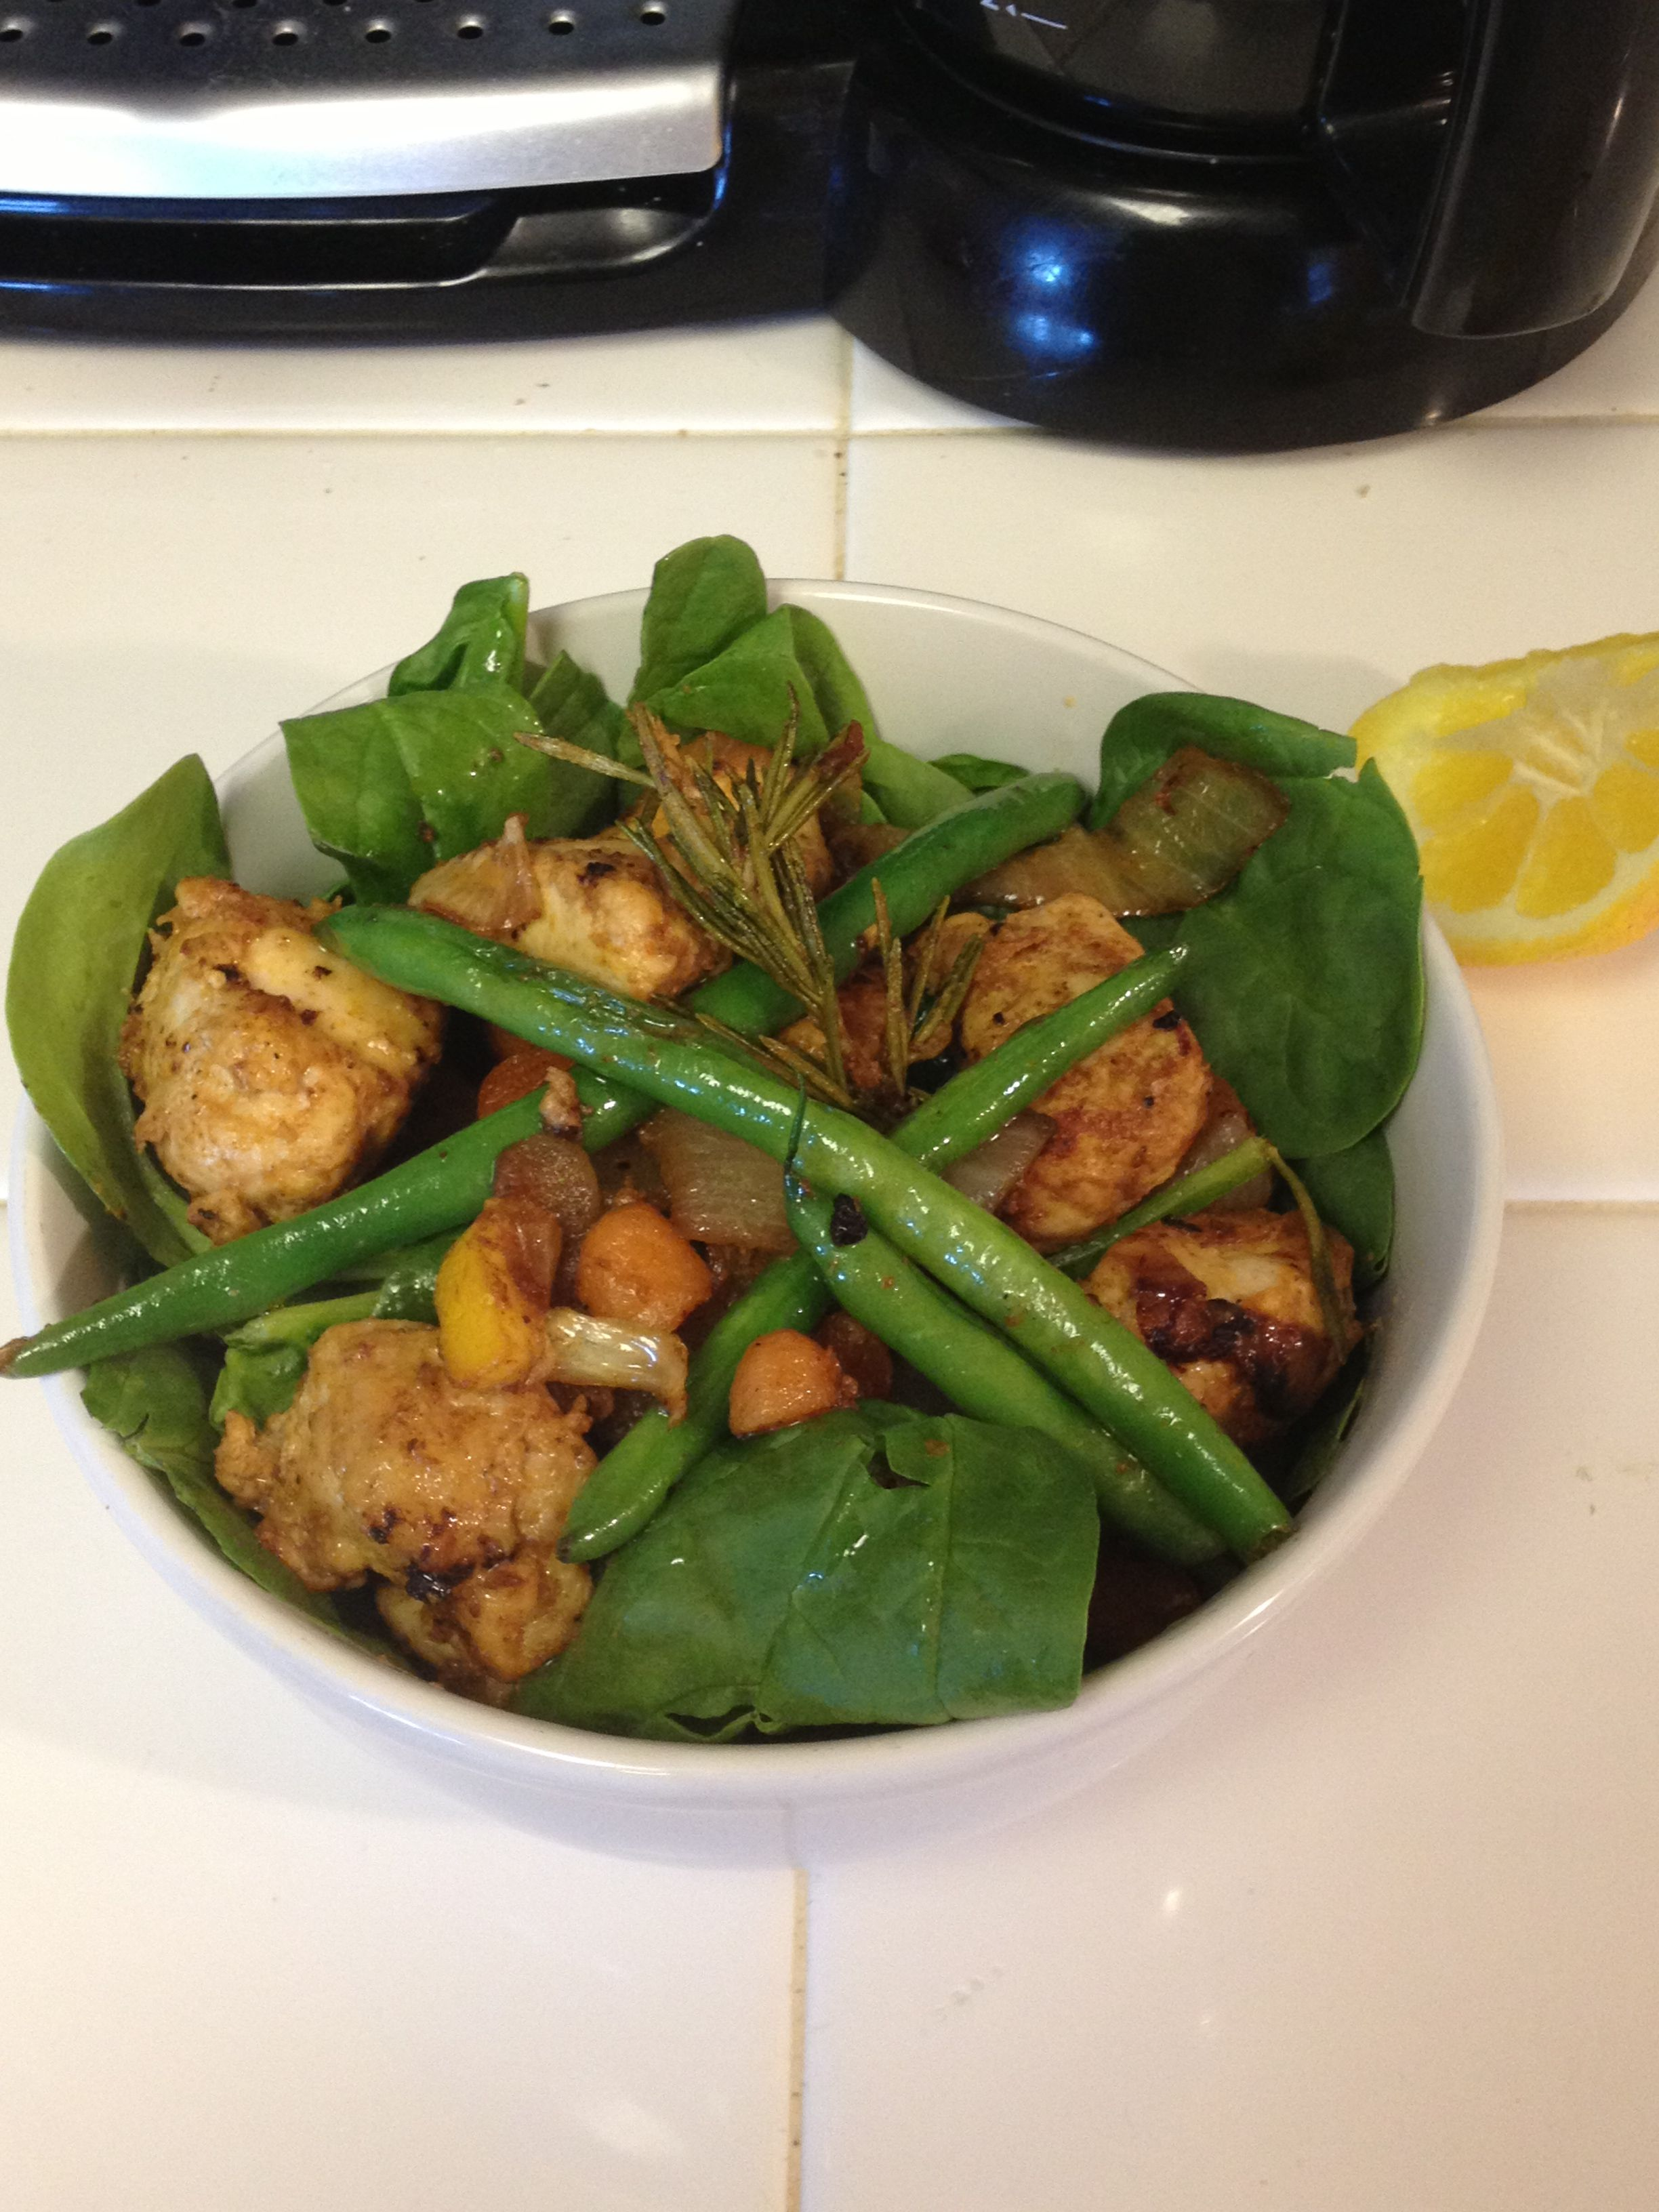 Spinach salad with chicken breast and green beans